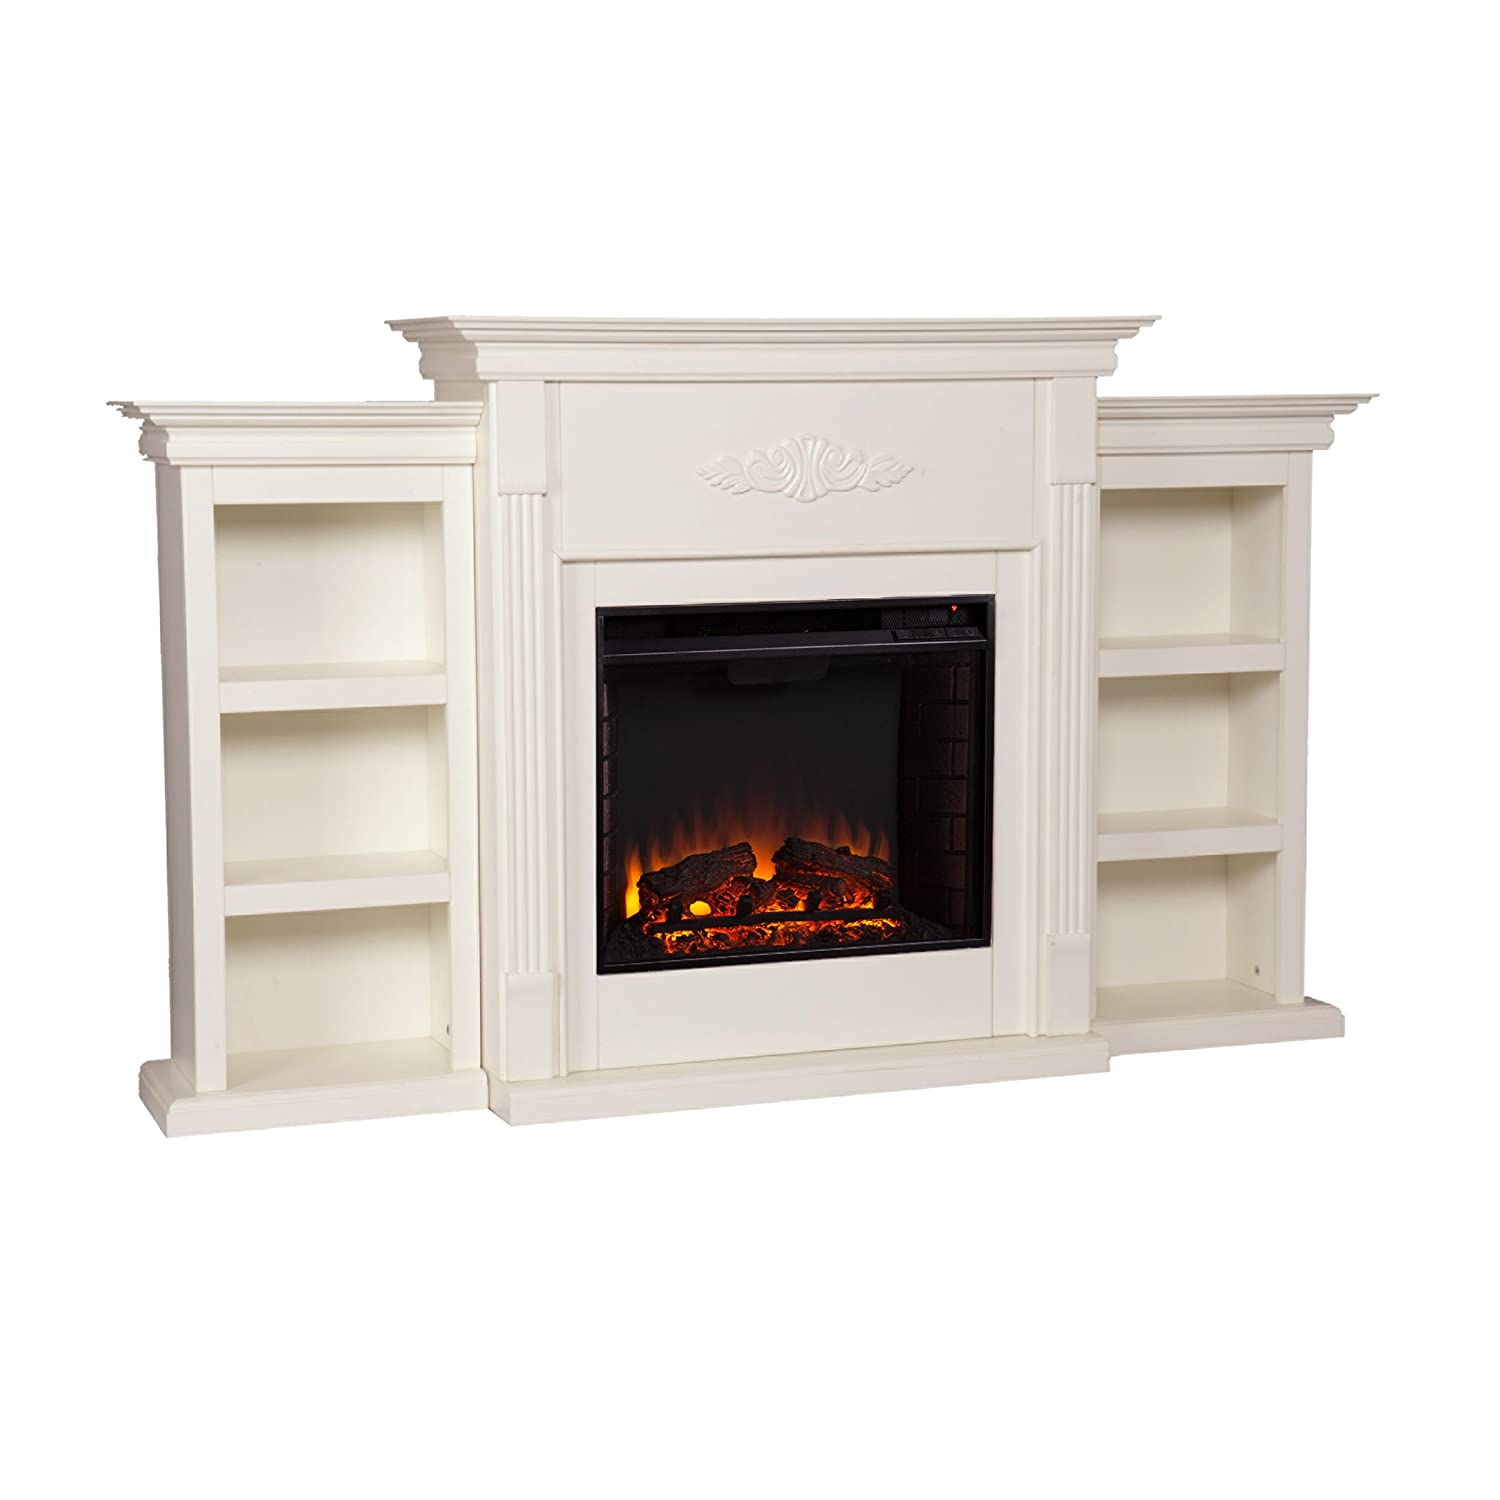 Amazon Com Southern Enterprises Tennyson Electric Fireplace With